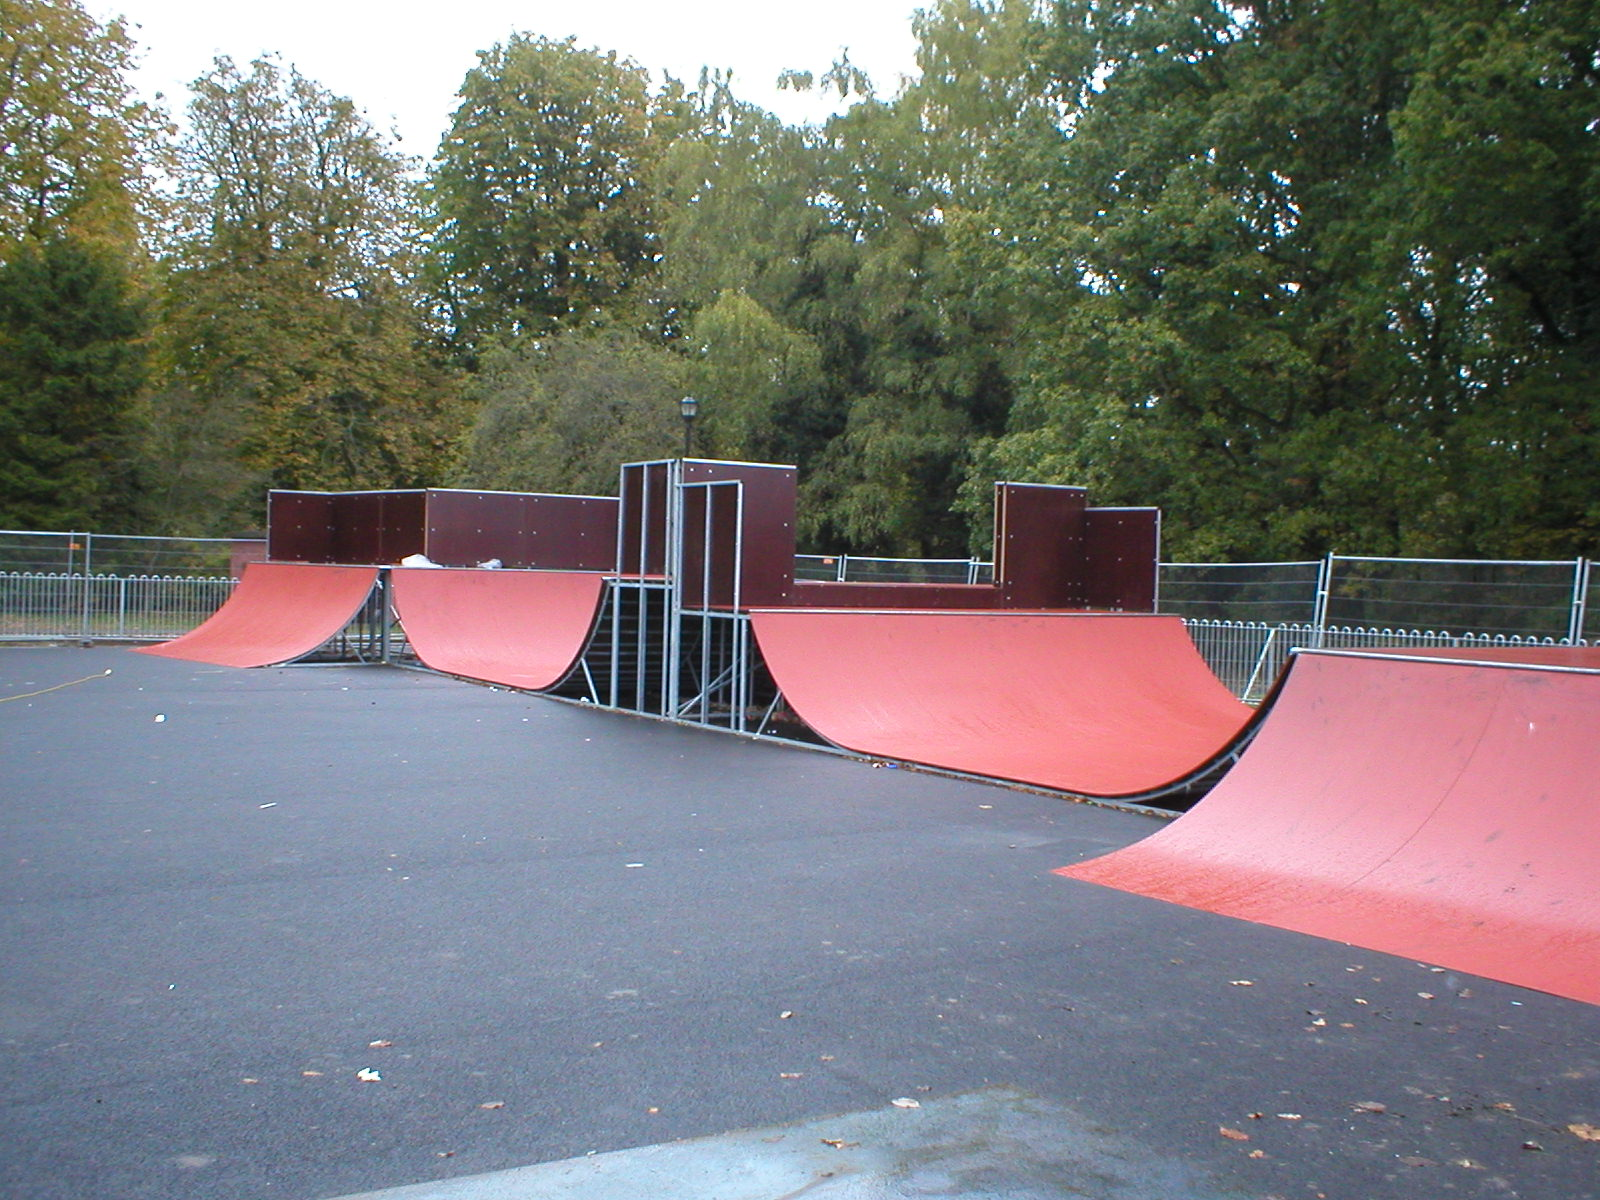 Farnborough Skate Park